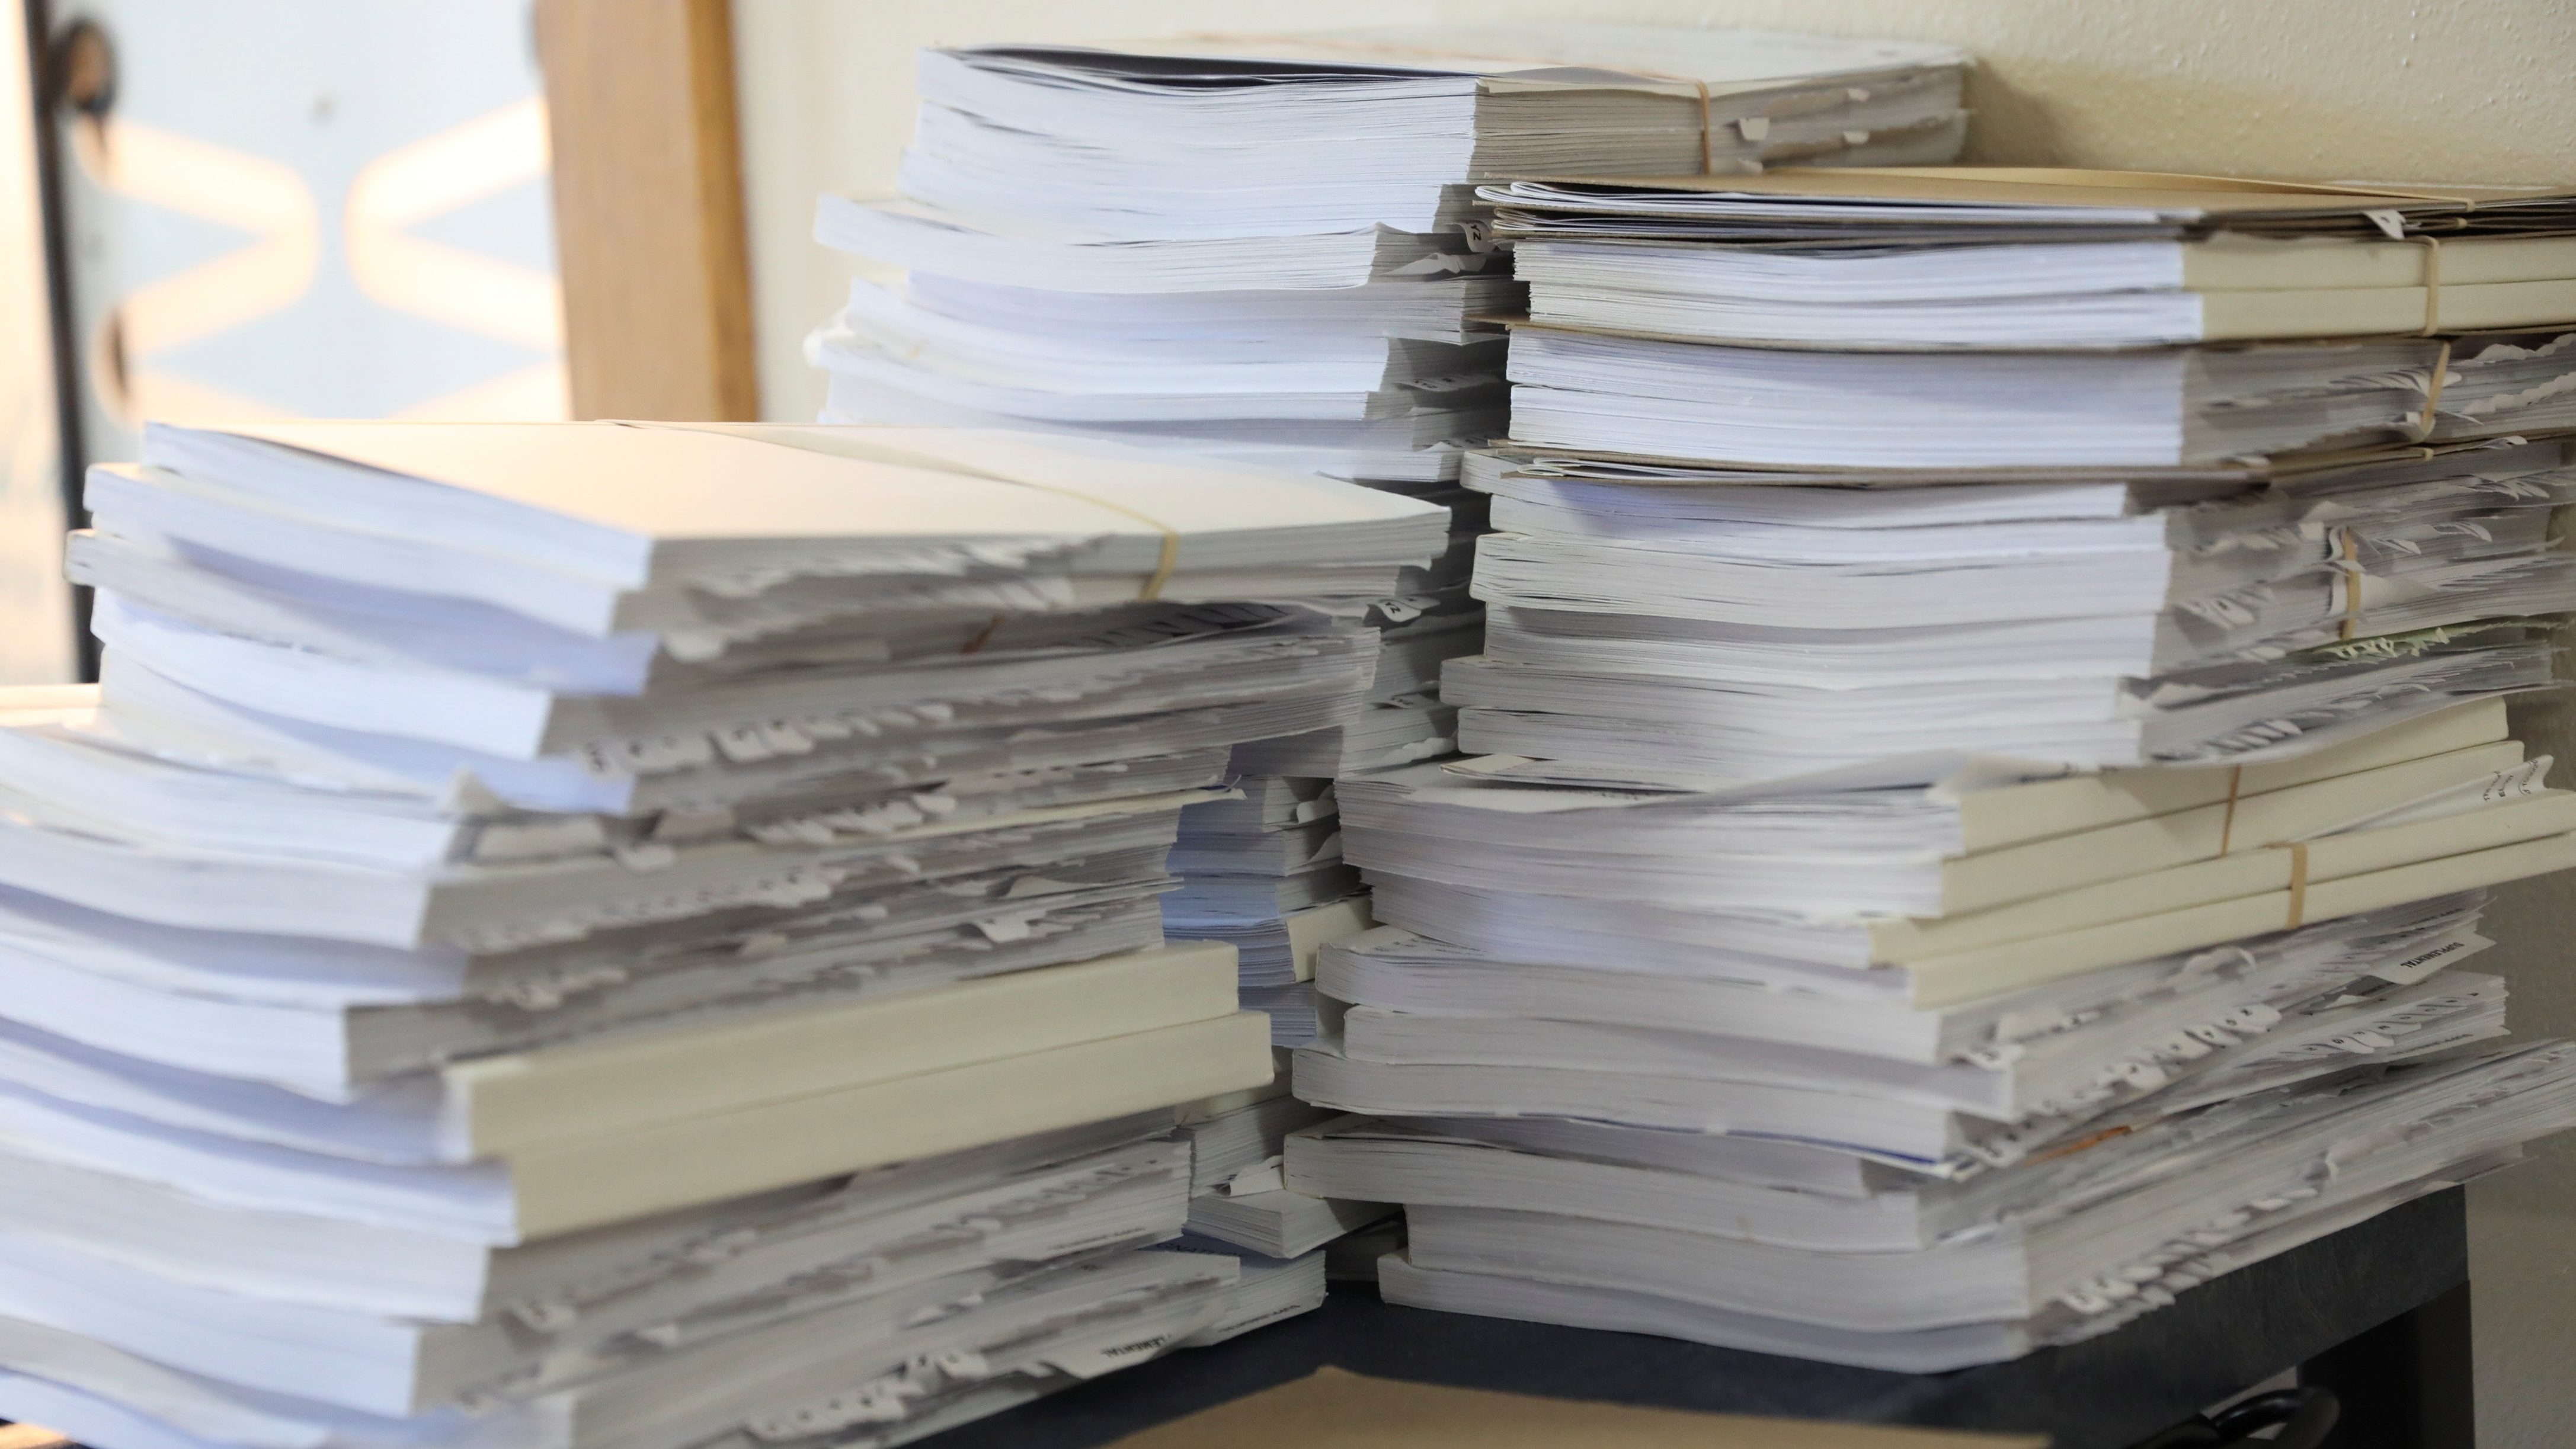 A stack of voter signature books